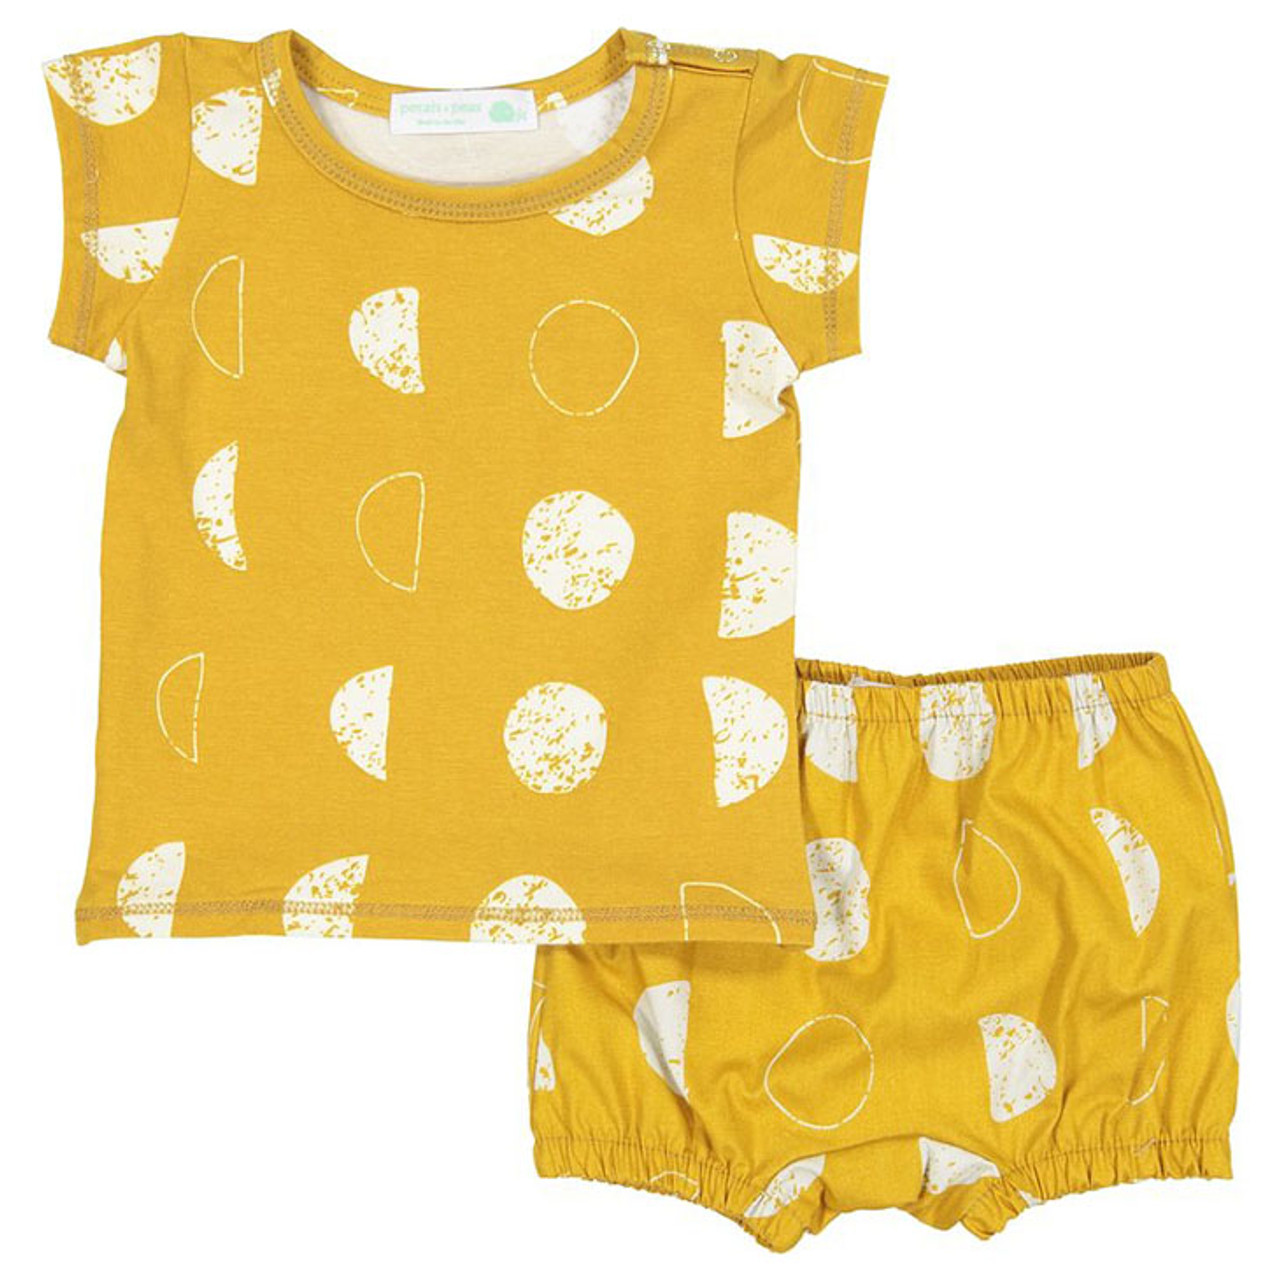 fd1cbaed7 Shirt & Bloomer Set, Mustard Creme Moon - Spearmint Ventures, LLC